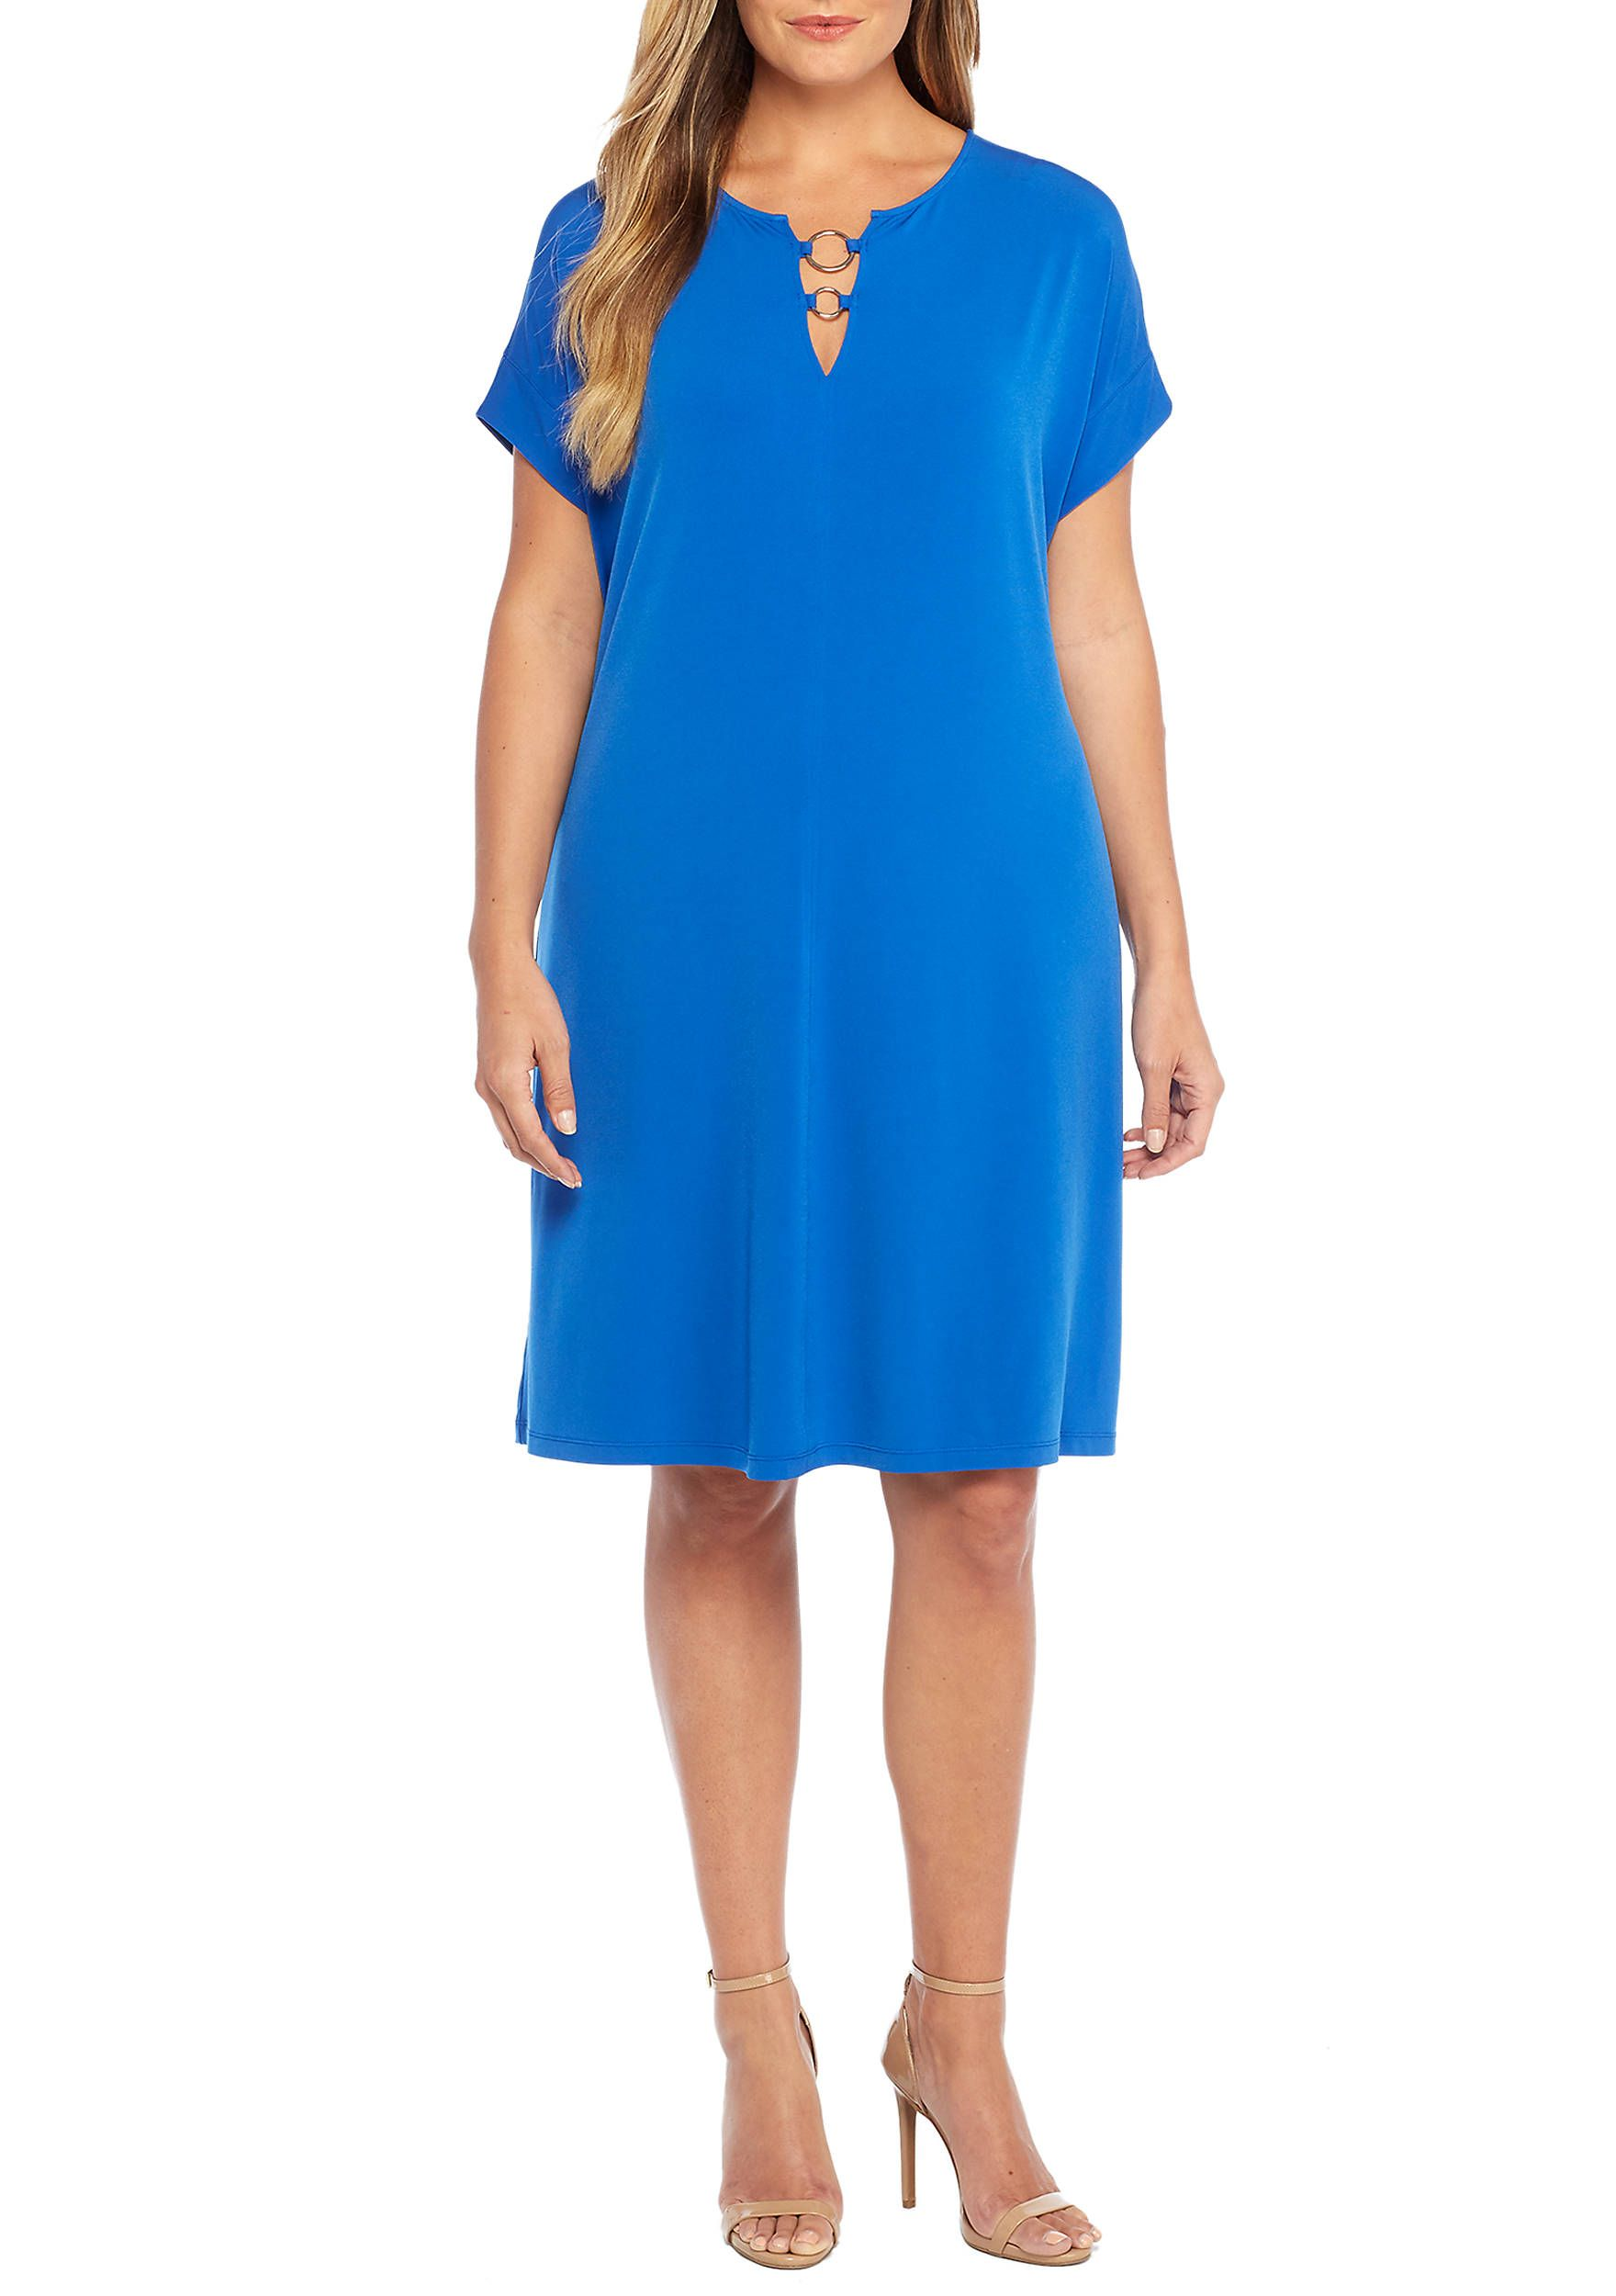 0b3e35a33b662 THE LIMITED Plus Size Short Sleeve Circle Hardware Dress | Fashions ...